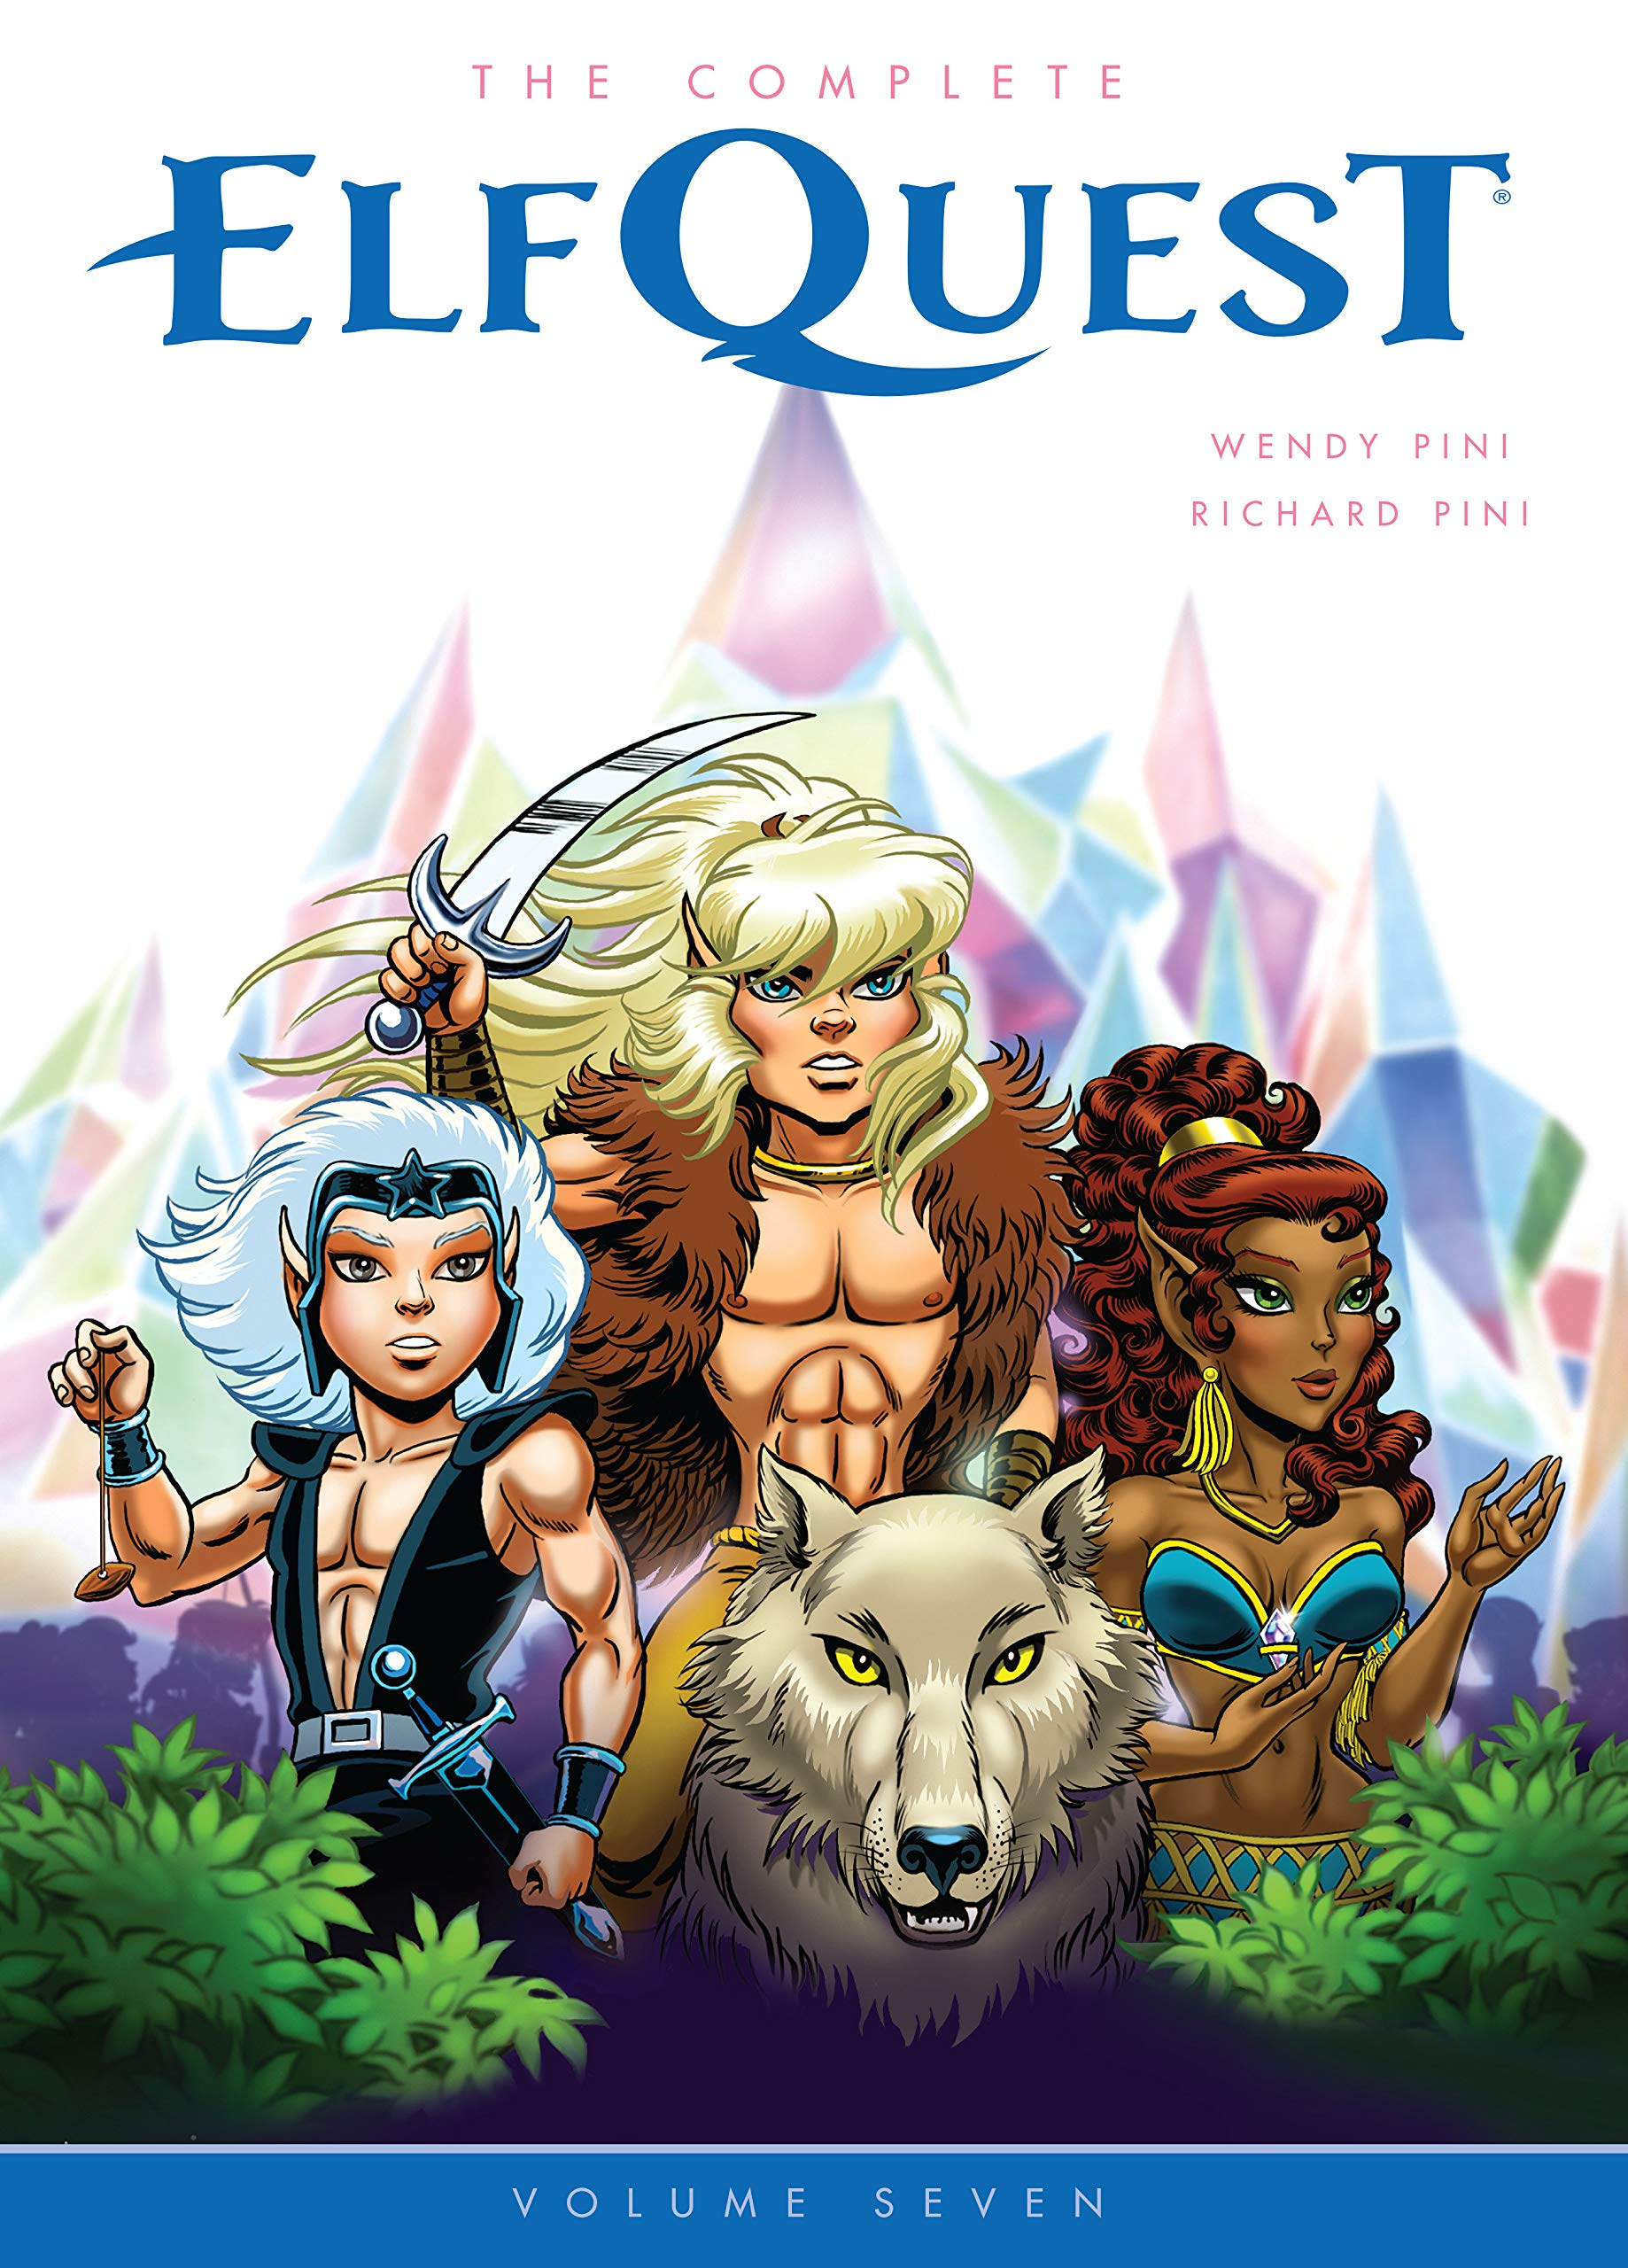 Download The Complete Elfquest Volume One By Wendy Pini